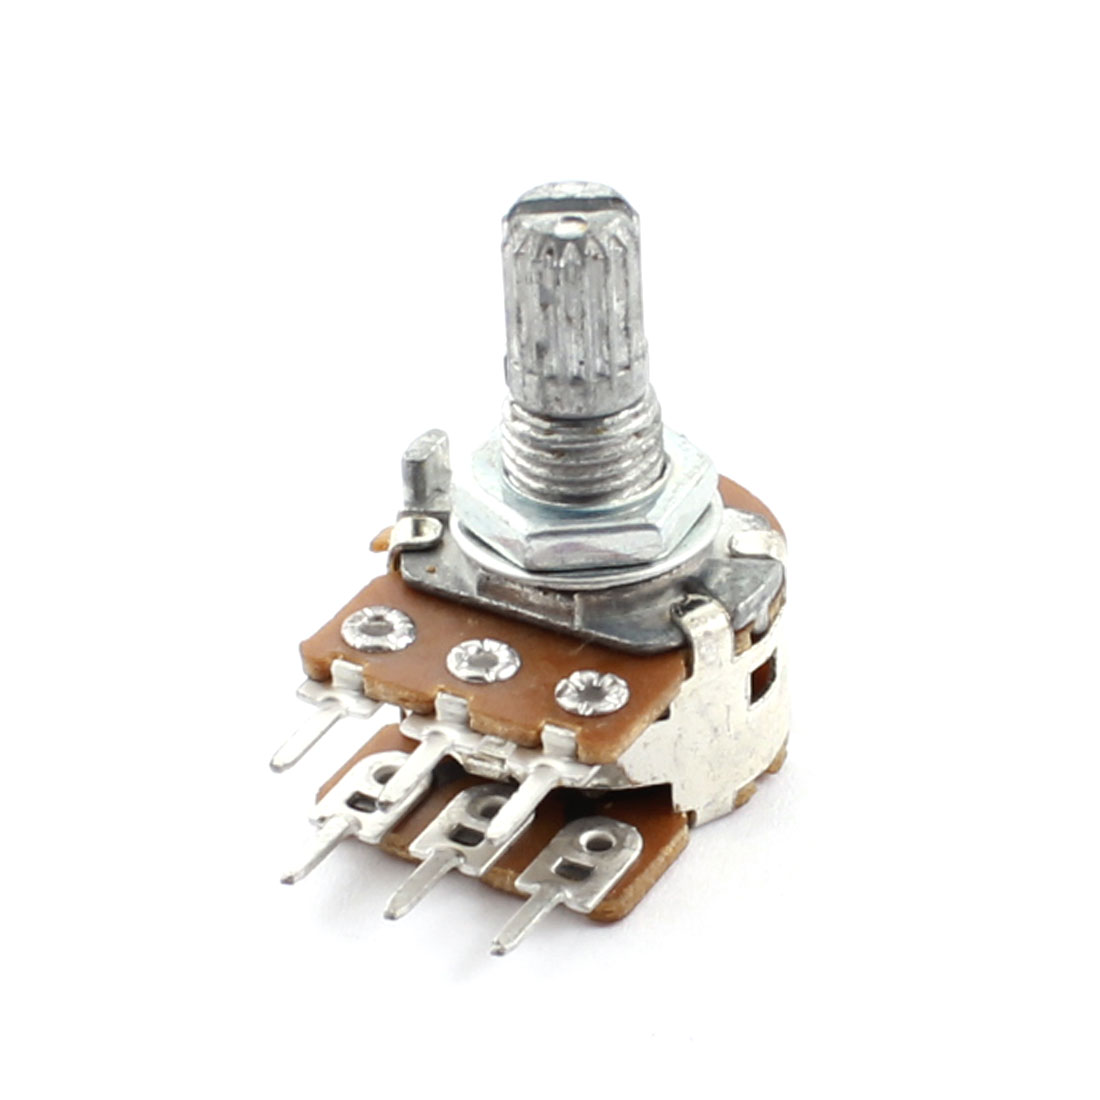 B503 50K Ohm 6mm Dia Knurled Shaft 7mm Thread 6-Pin Through Hole Top Adjustable Linear Type B Rotary Potentiometer